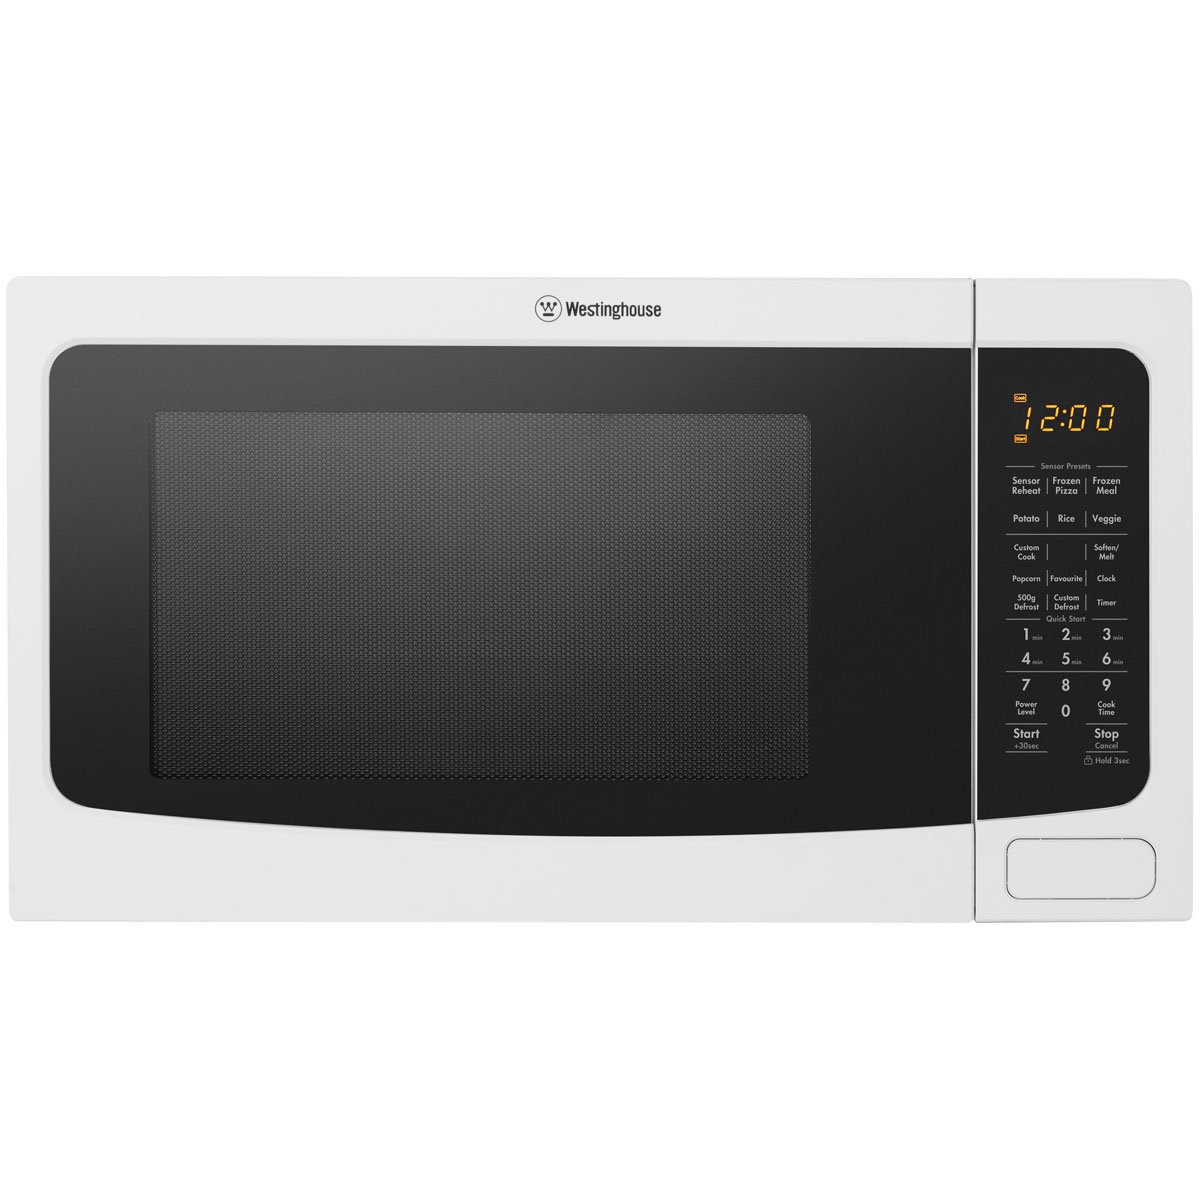 Westinghouse Freestanding Microwave WMF4102WA